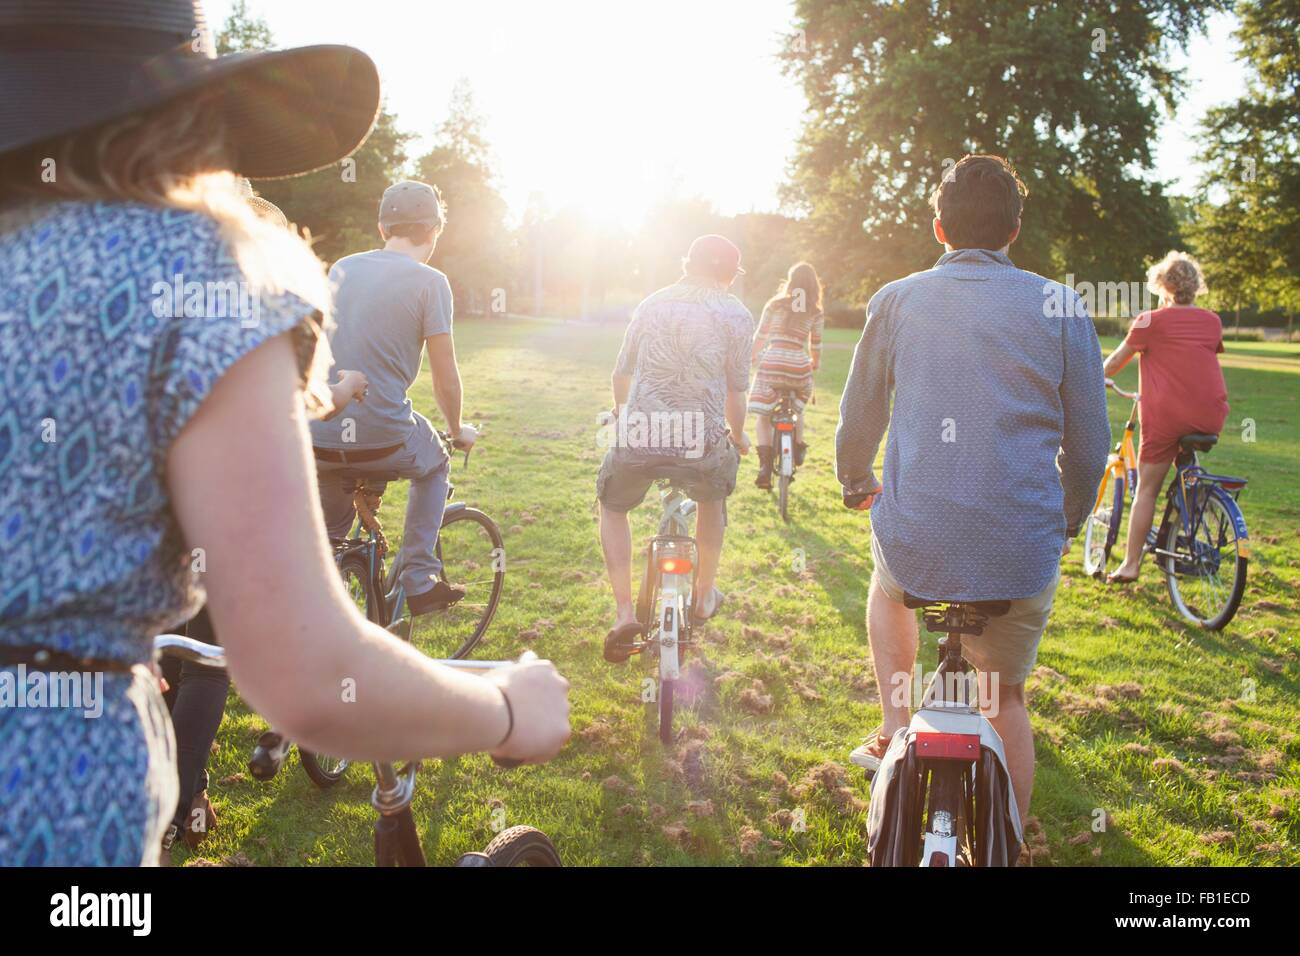 Rear view of party going adults arriving in park on bicycles at sunset - Stock Image